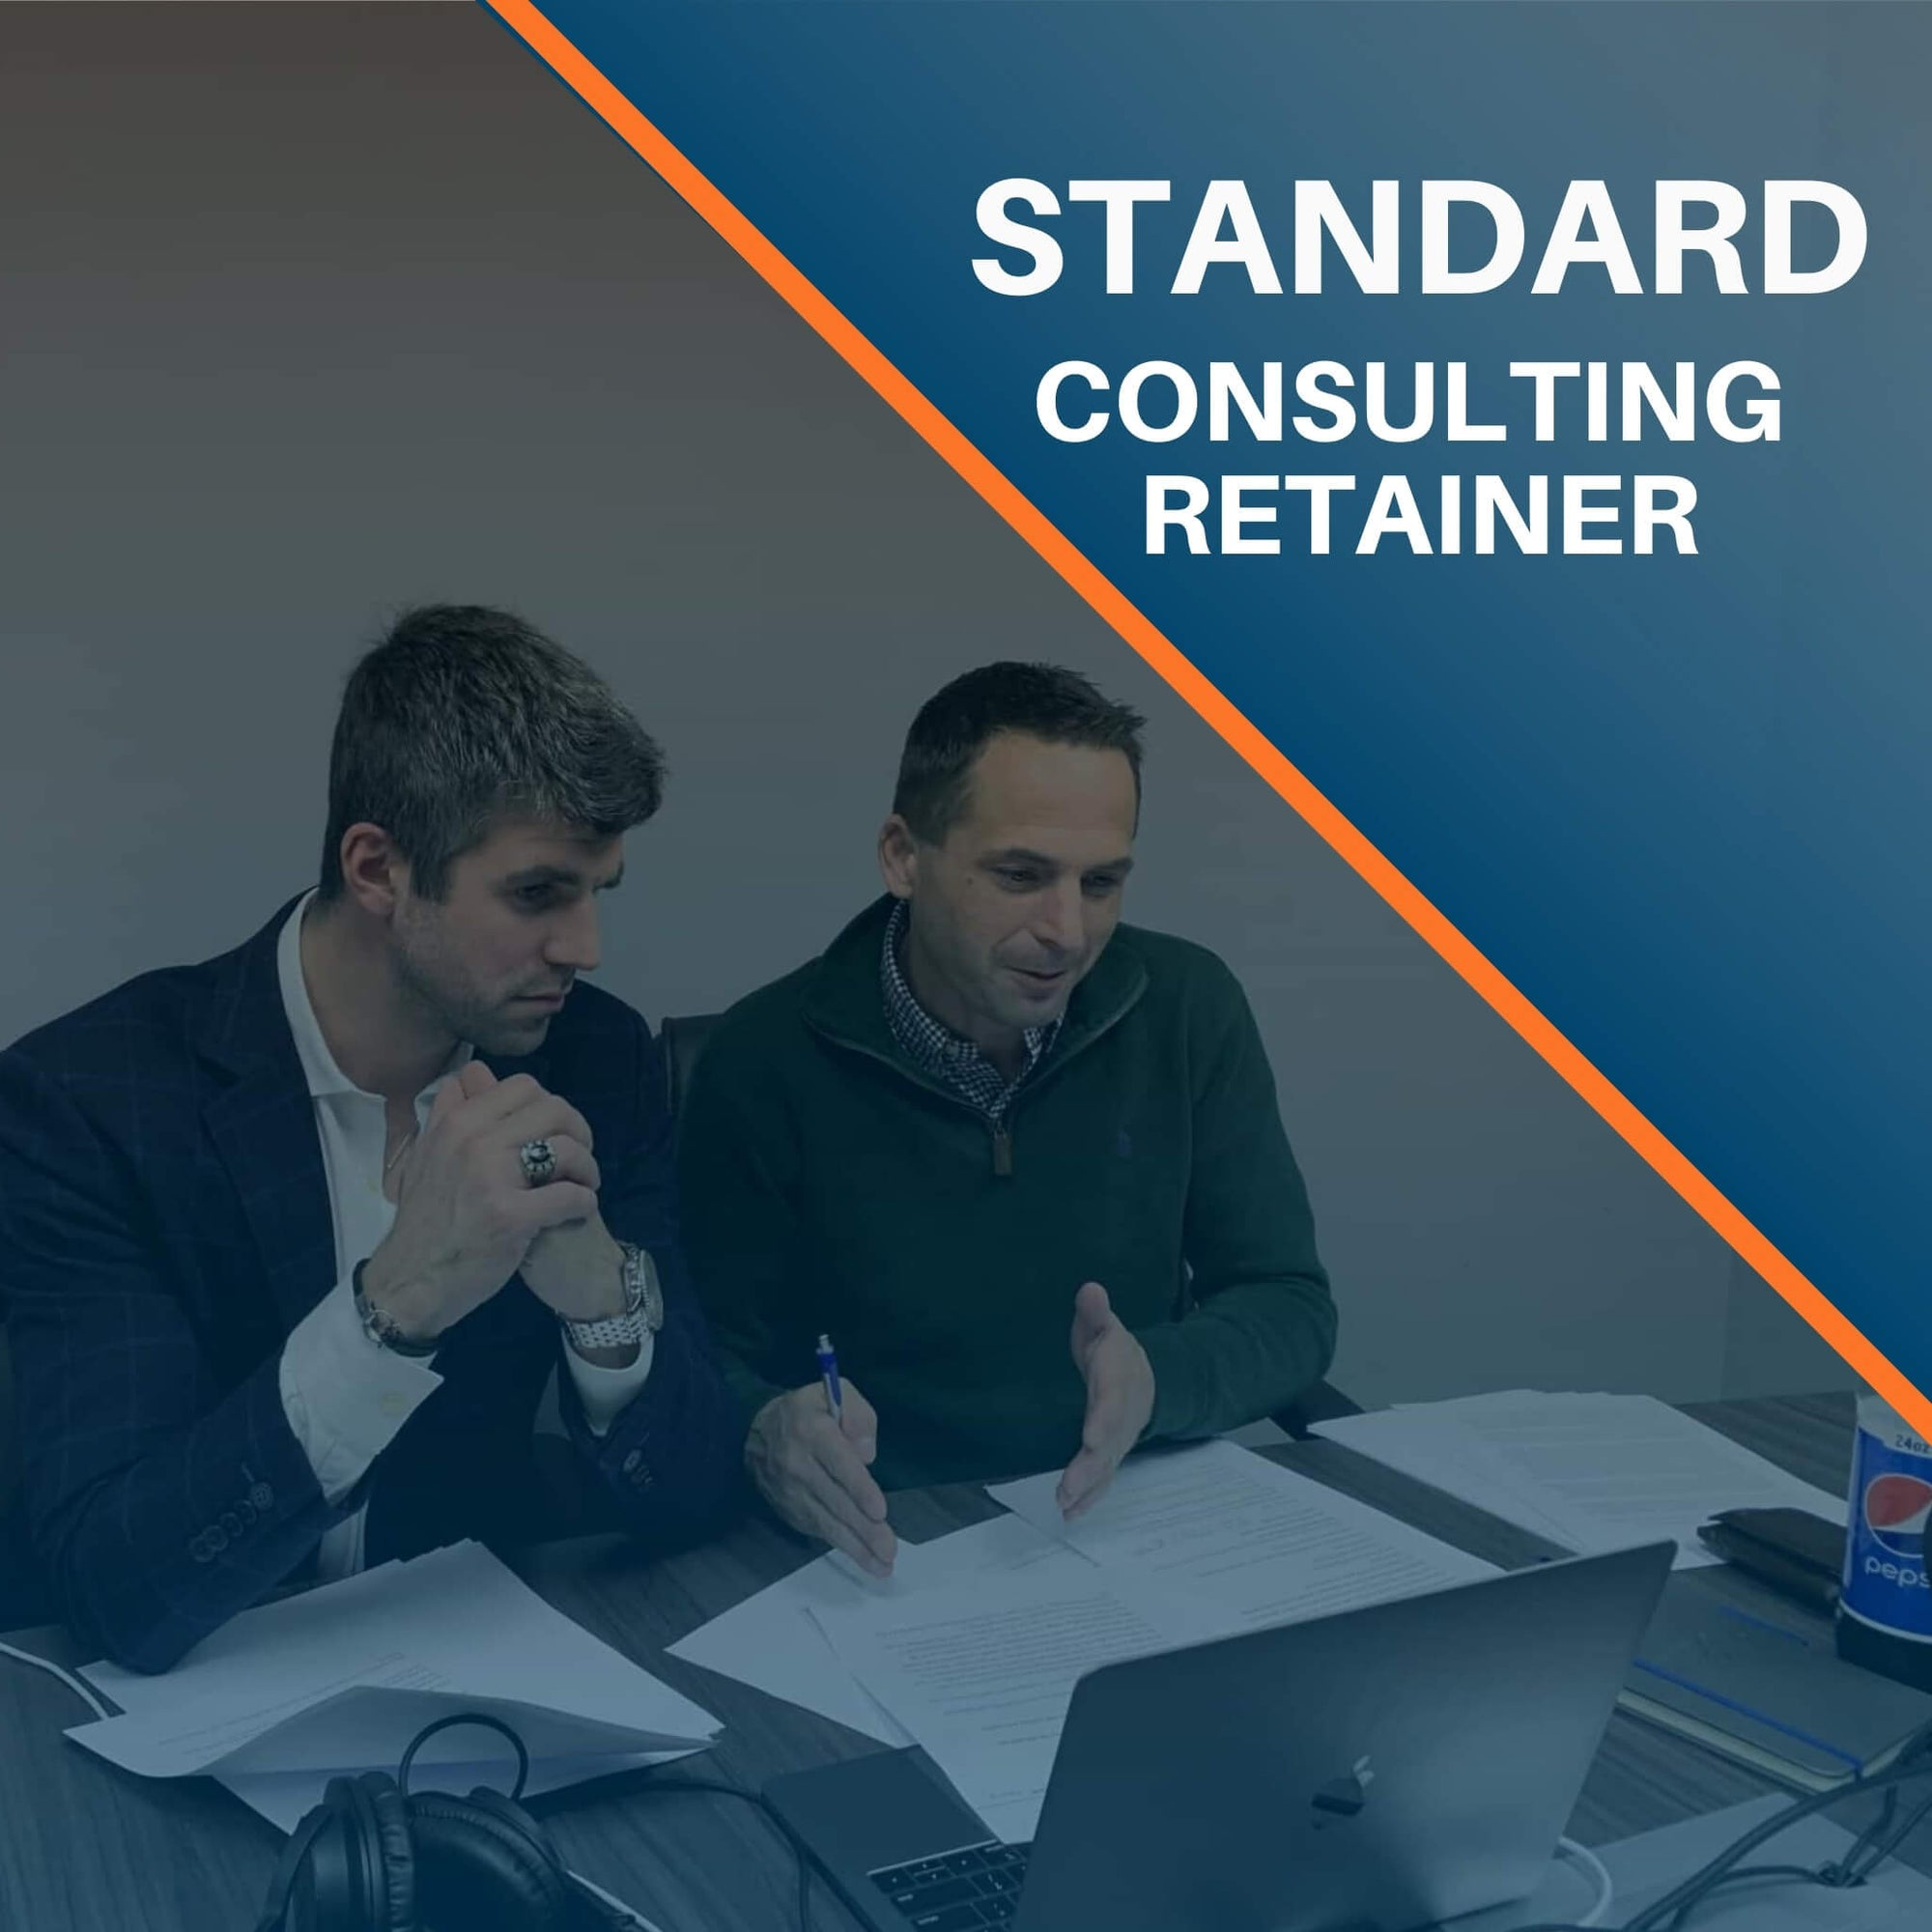 Standard Consulting Retainer